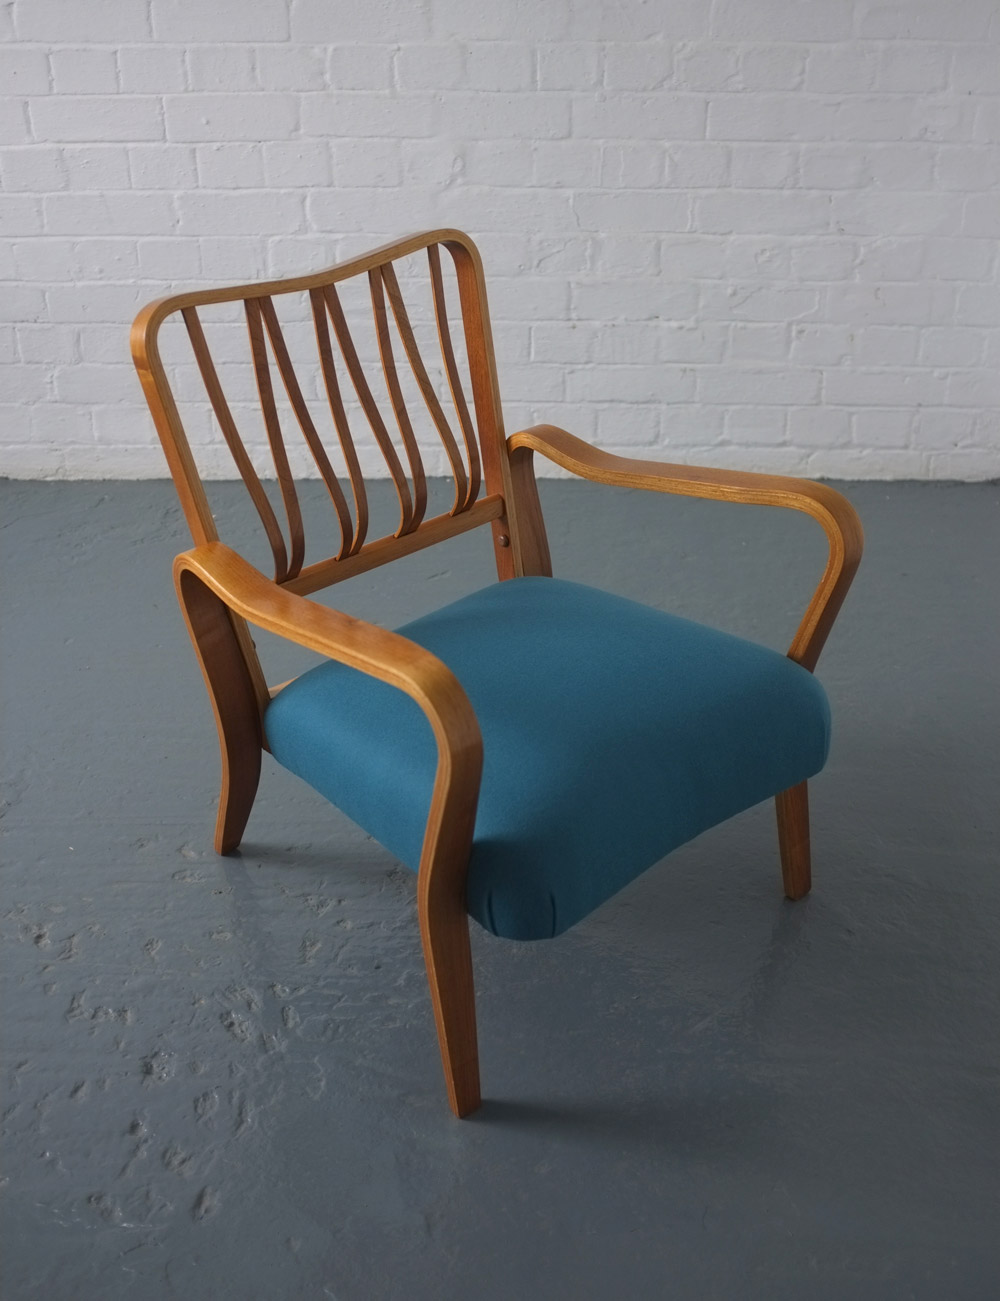 Linden chair by G.A. Jenkins / Eric Lyons